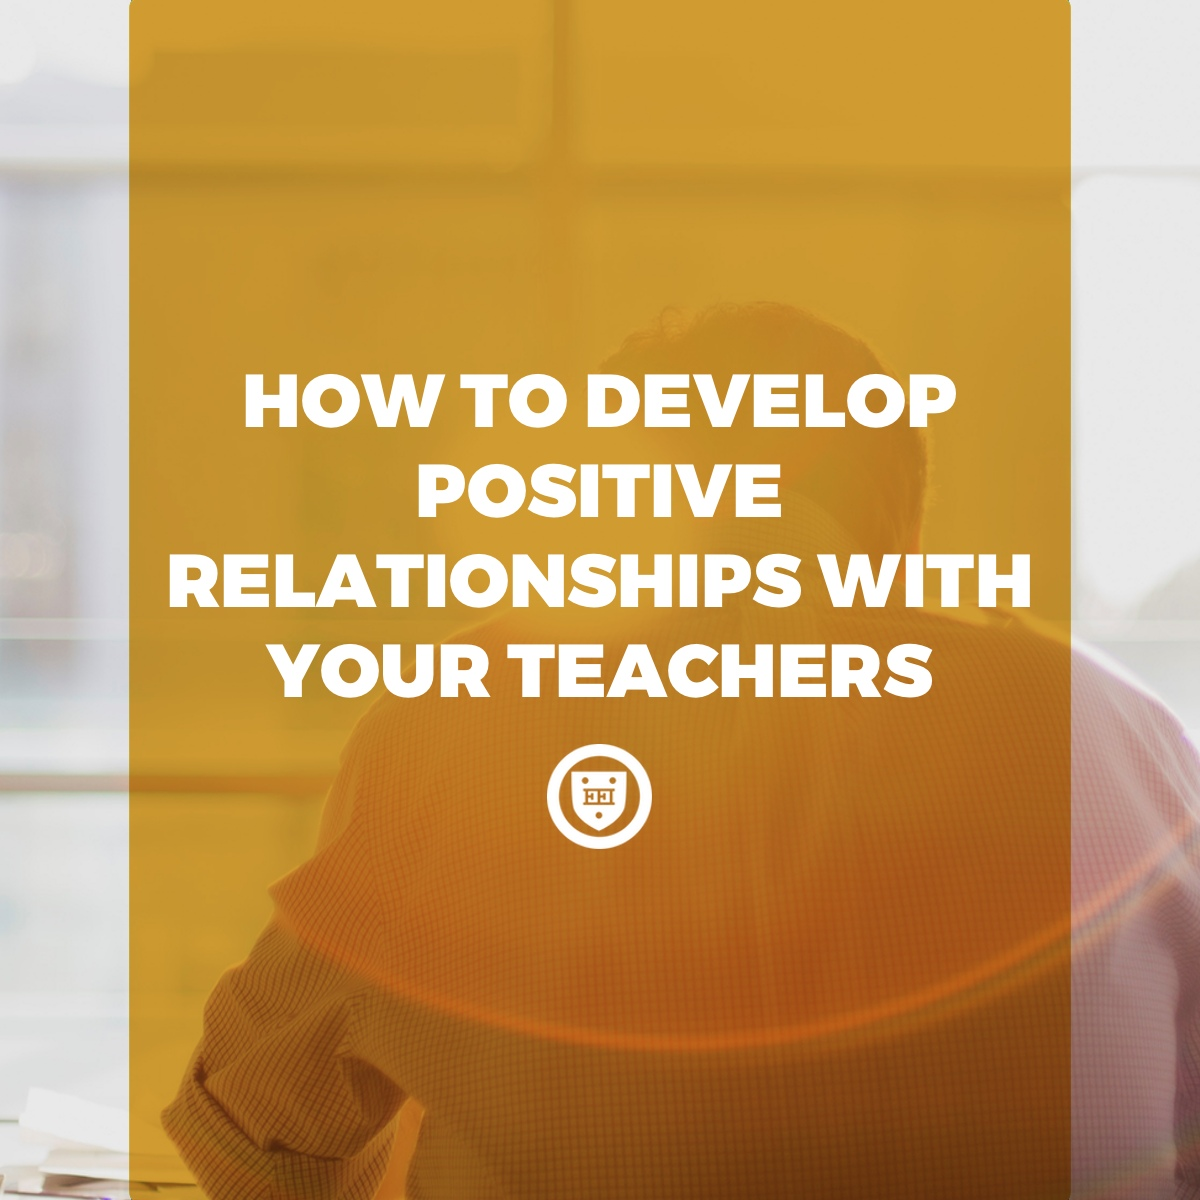 How to Develop Positive Relationships with Your Teachers